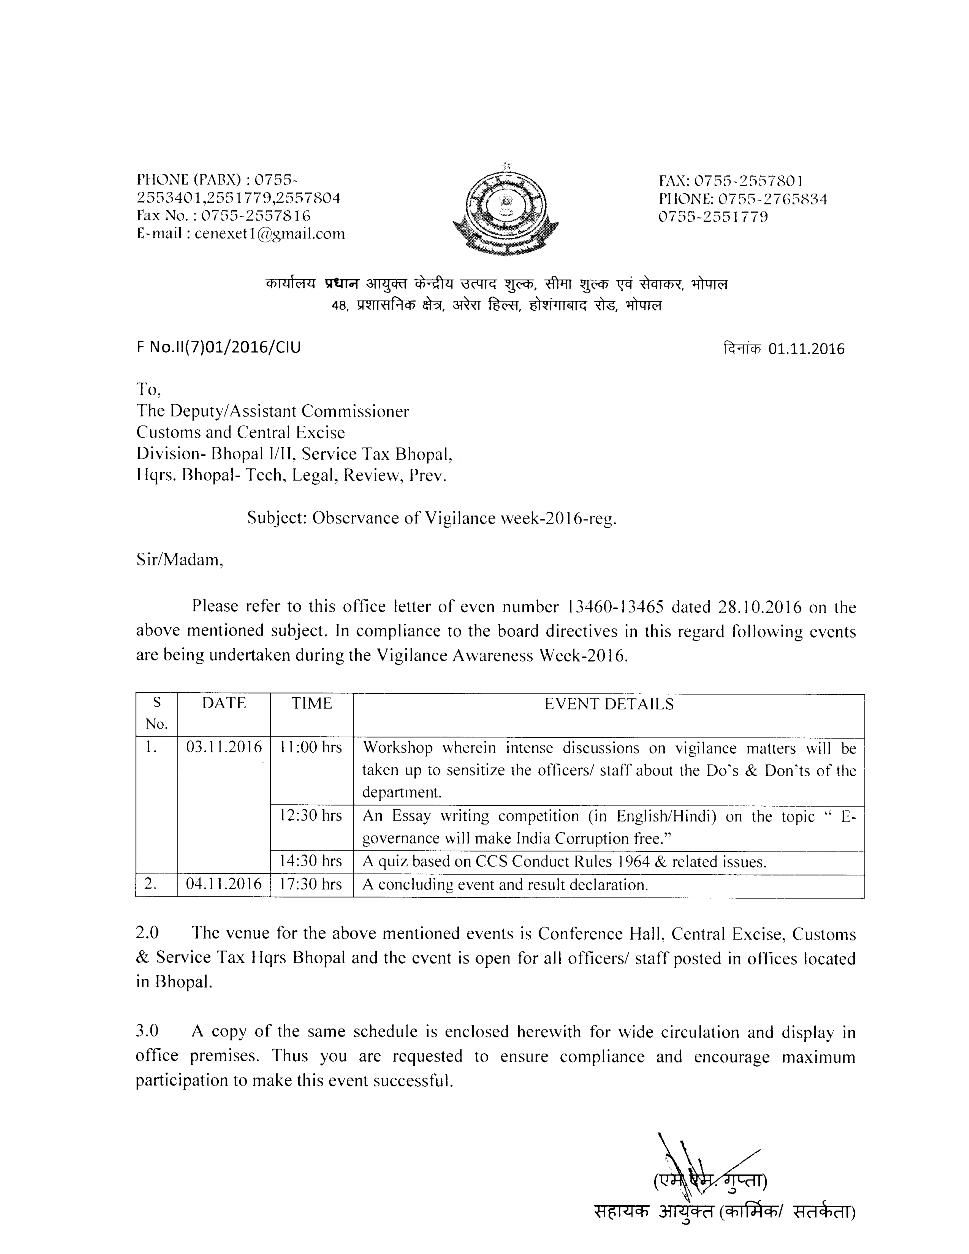 Posted All India Central Excise And Service Reschedule Appointment